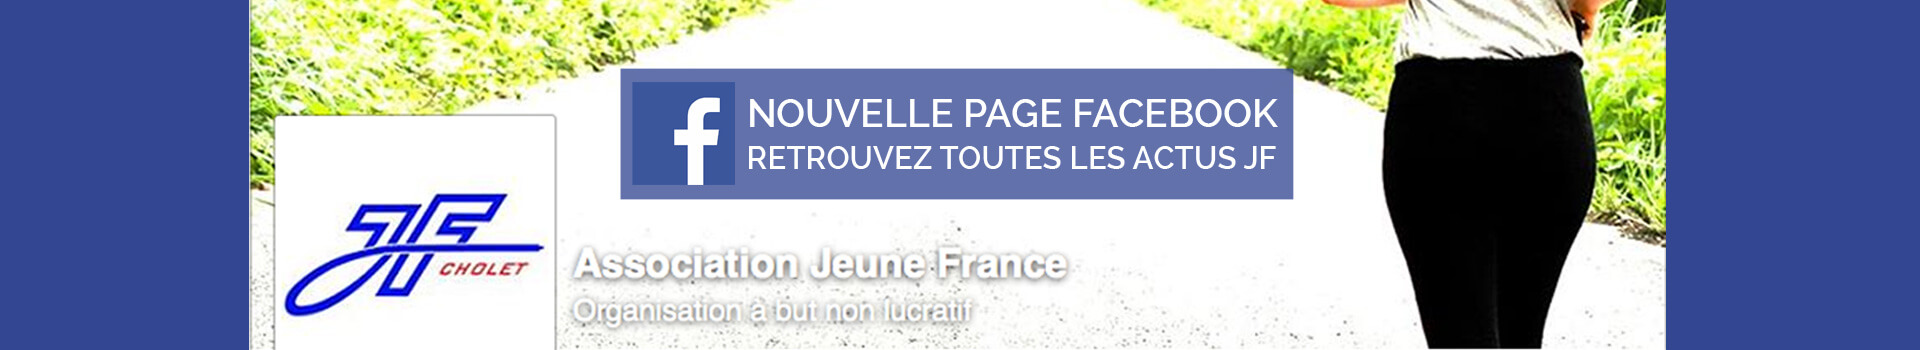 actualite2-page-facebook-jf